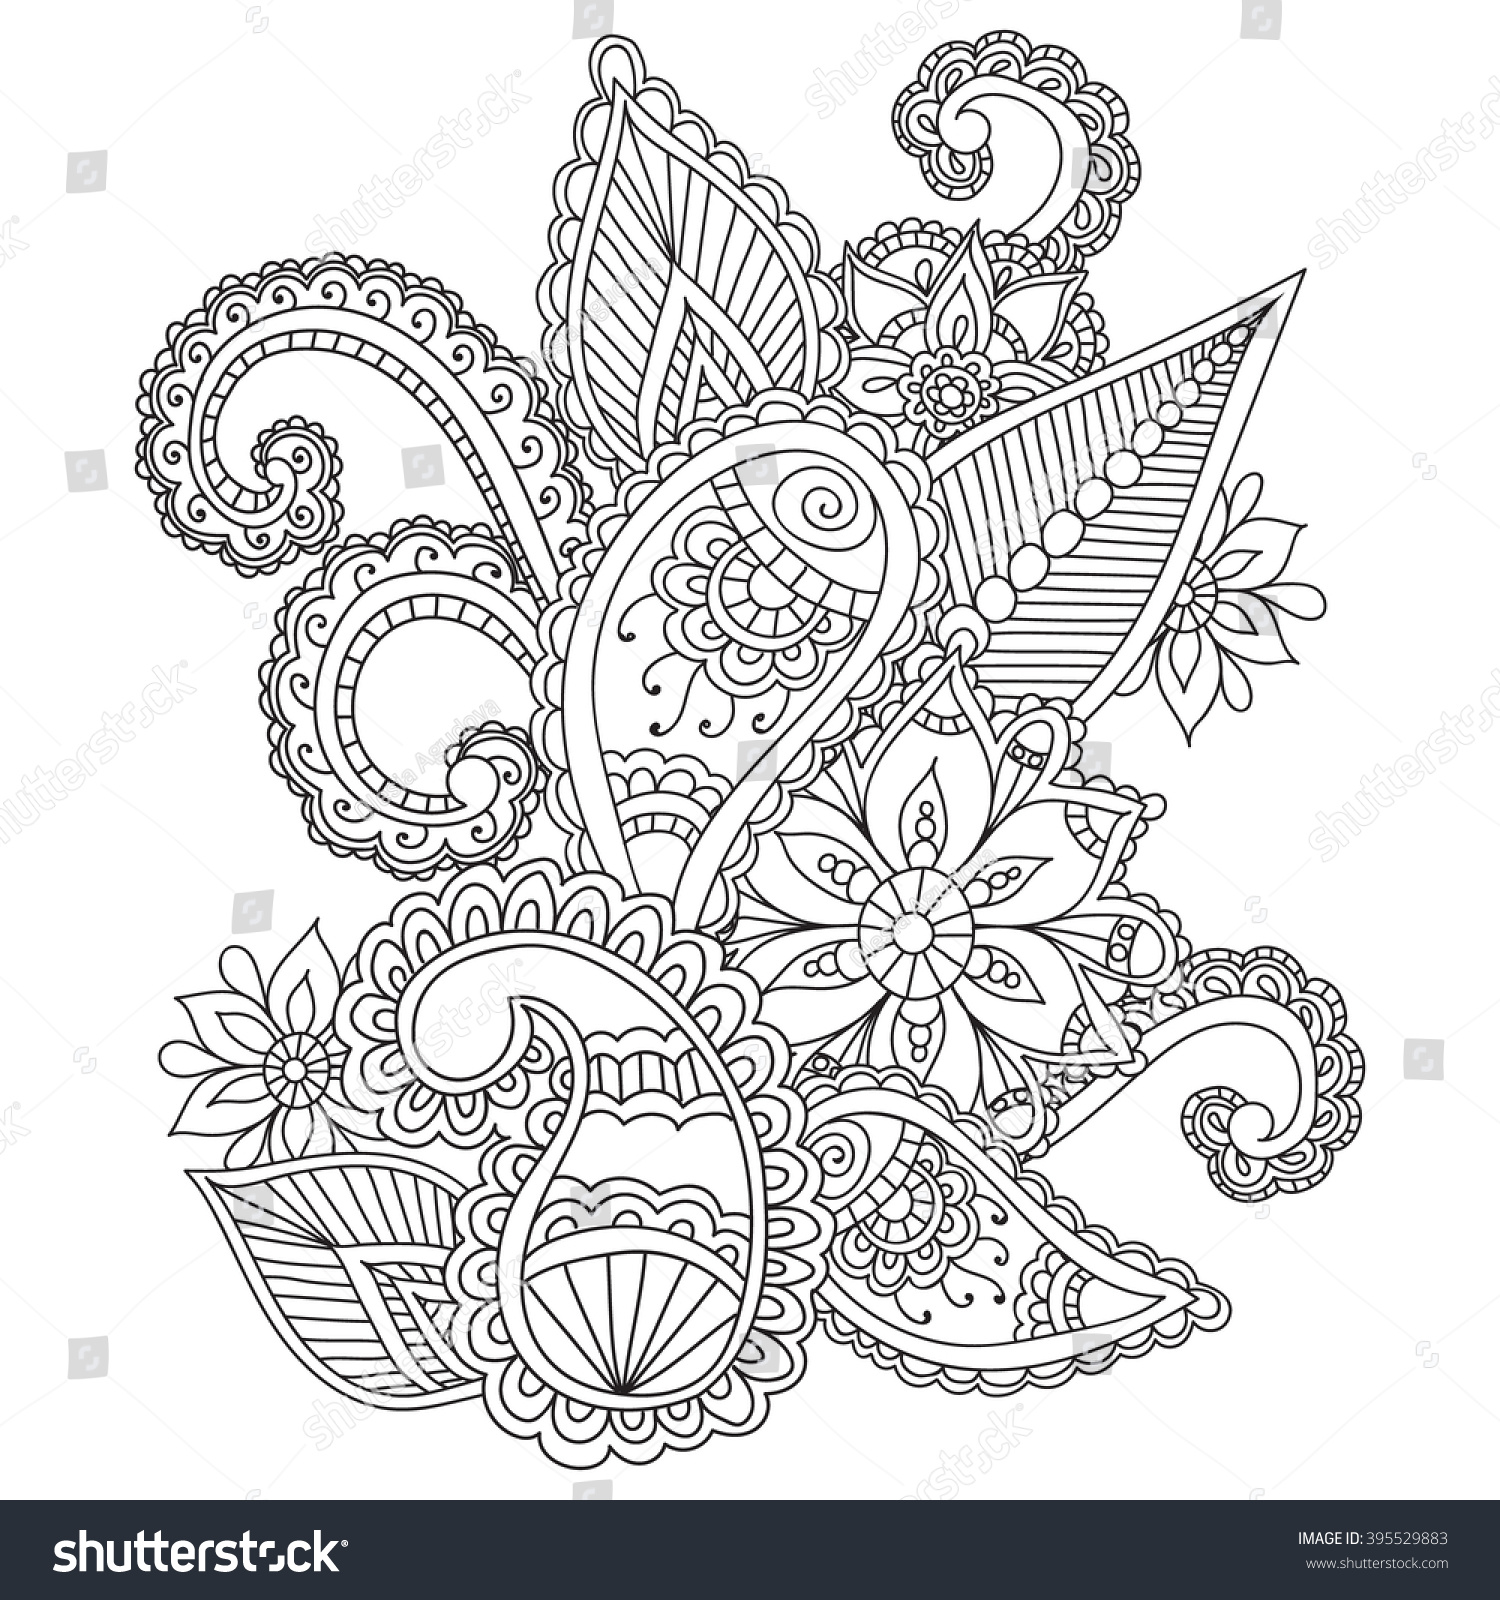 coloring pages for adults henna mehndi doodles abstract floral paisley design elements mandala - Mehndi Coloring Pages